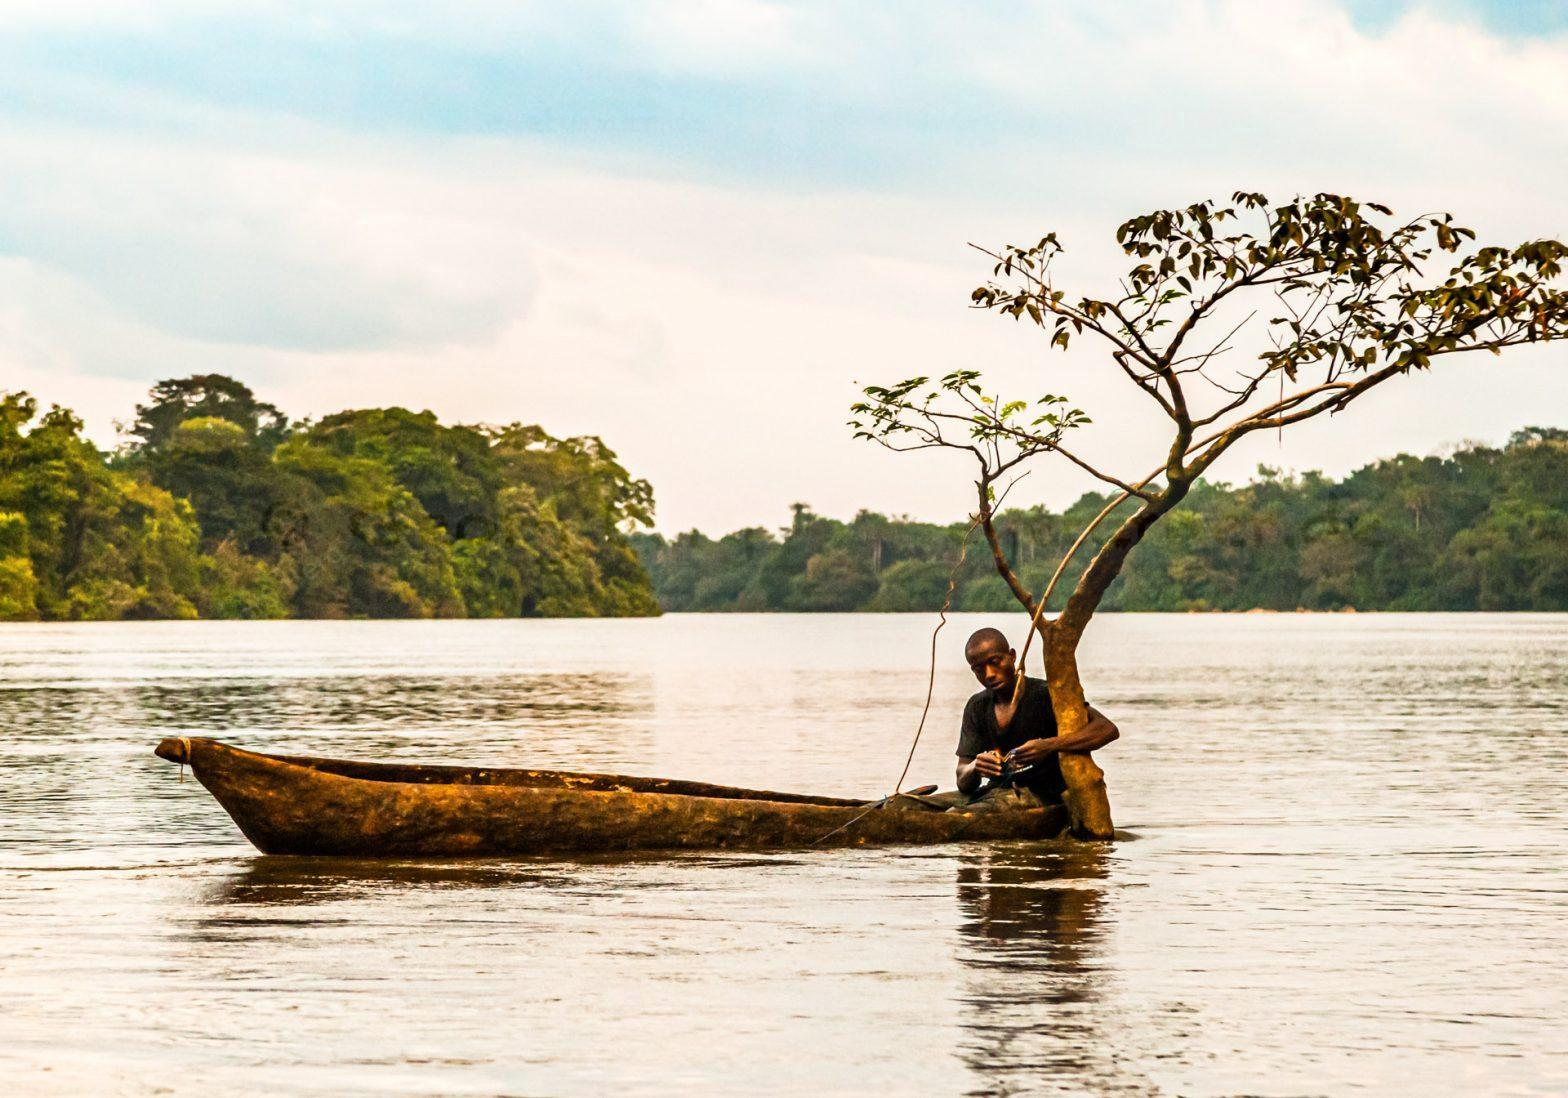 Fisherman in canoe on Moa River, Sierra Leone